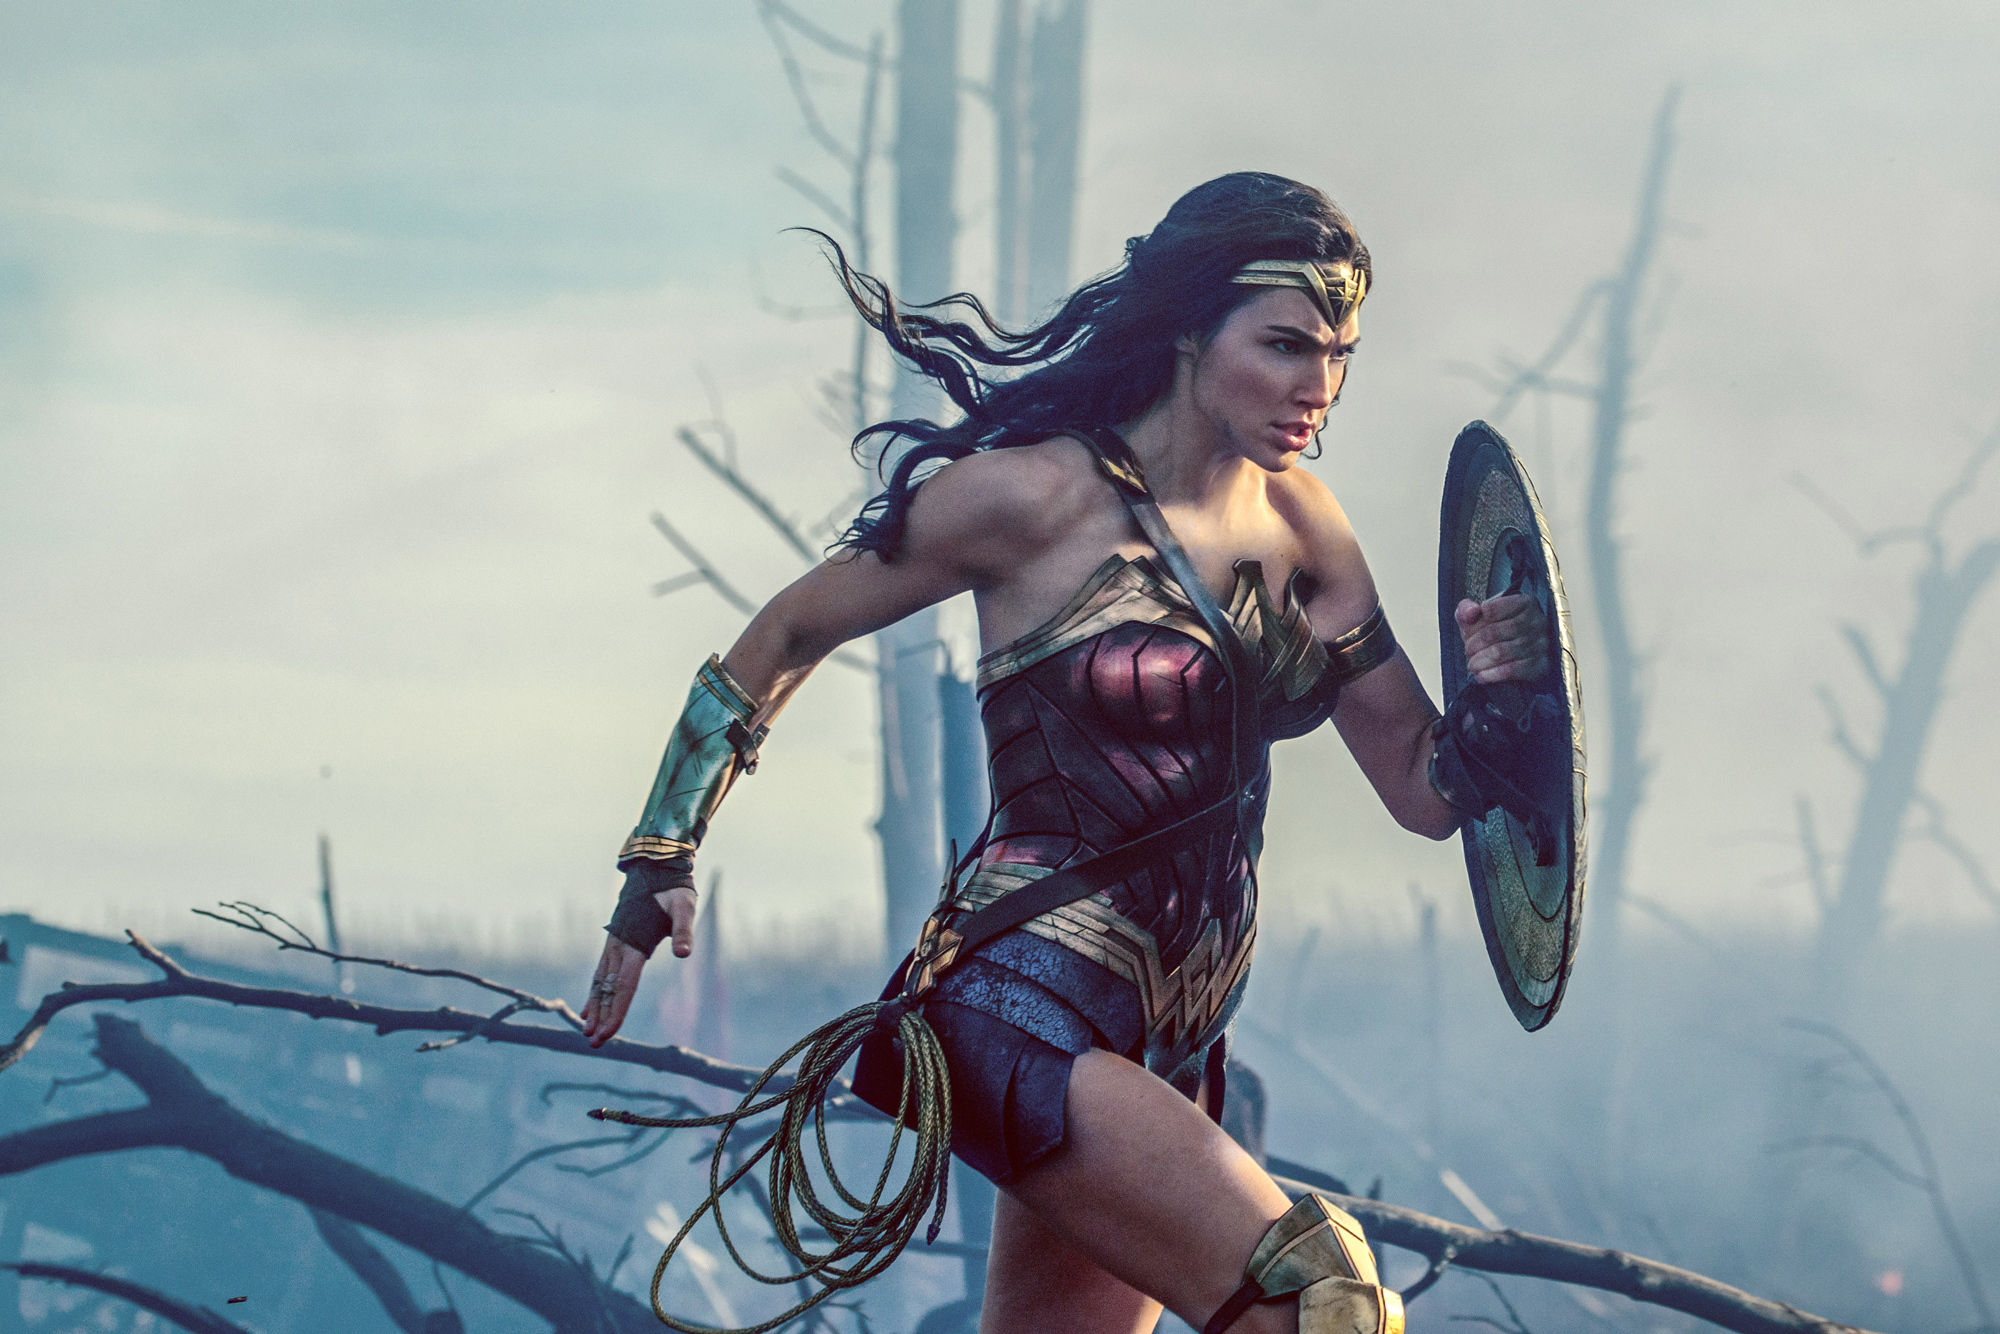 A New Wonder Woman Roller Coaster Will Make Theme Park History